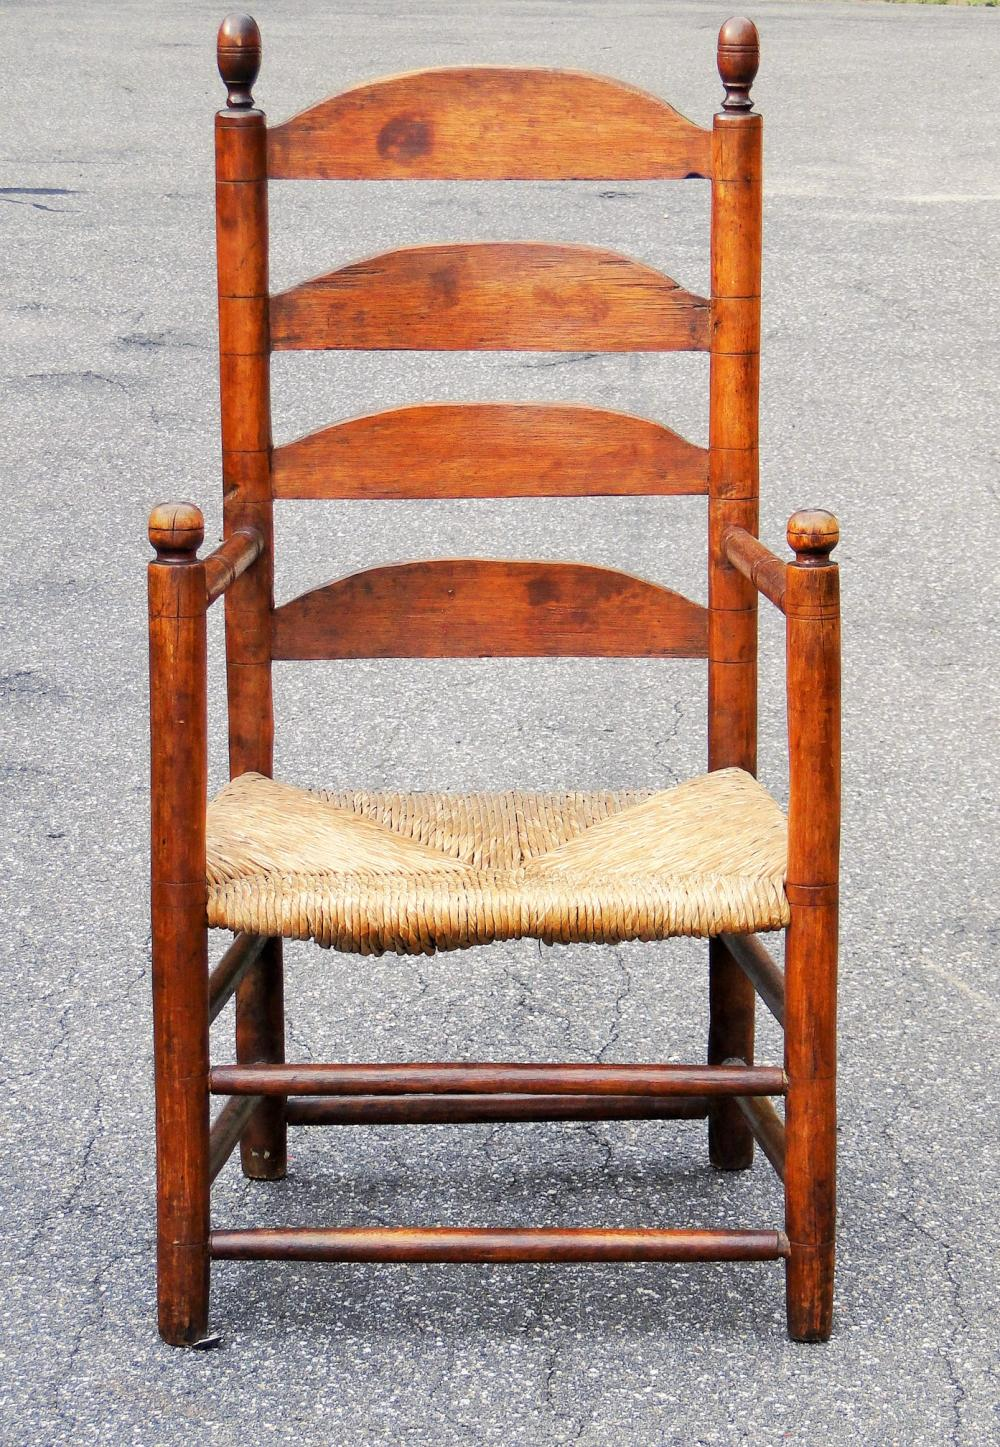 american antique chairs for sale at online auction buy rare